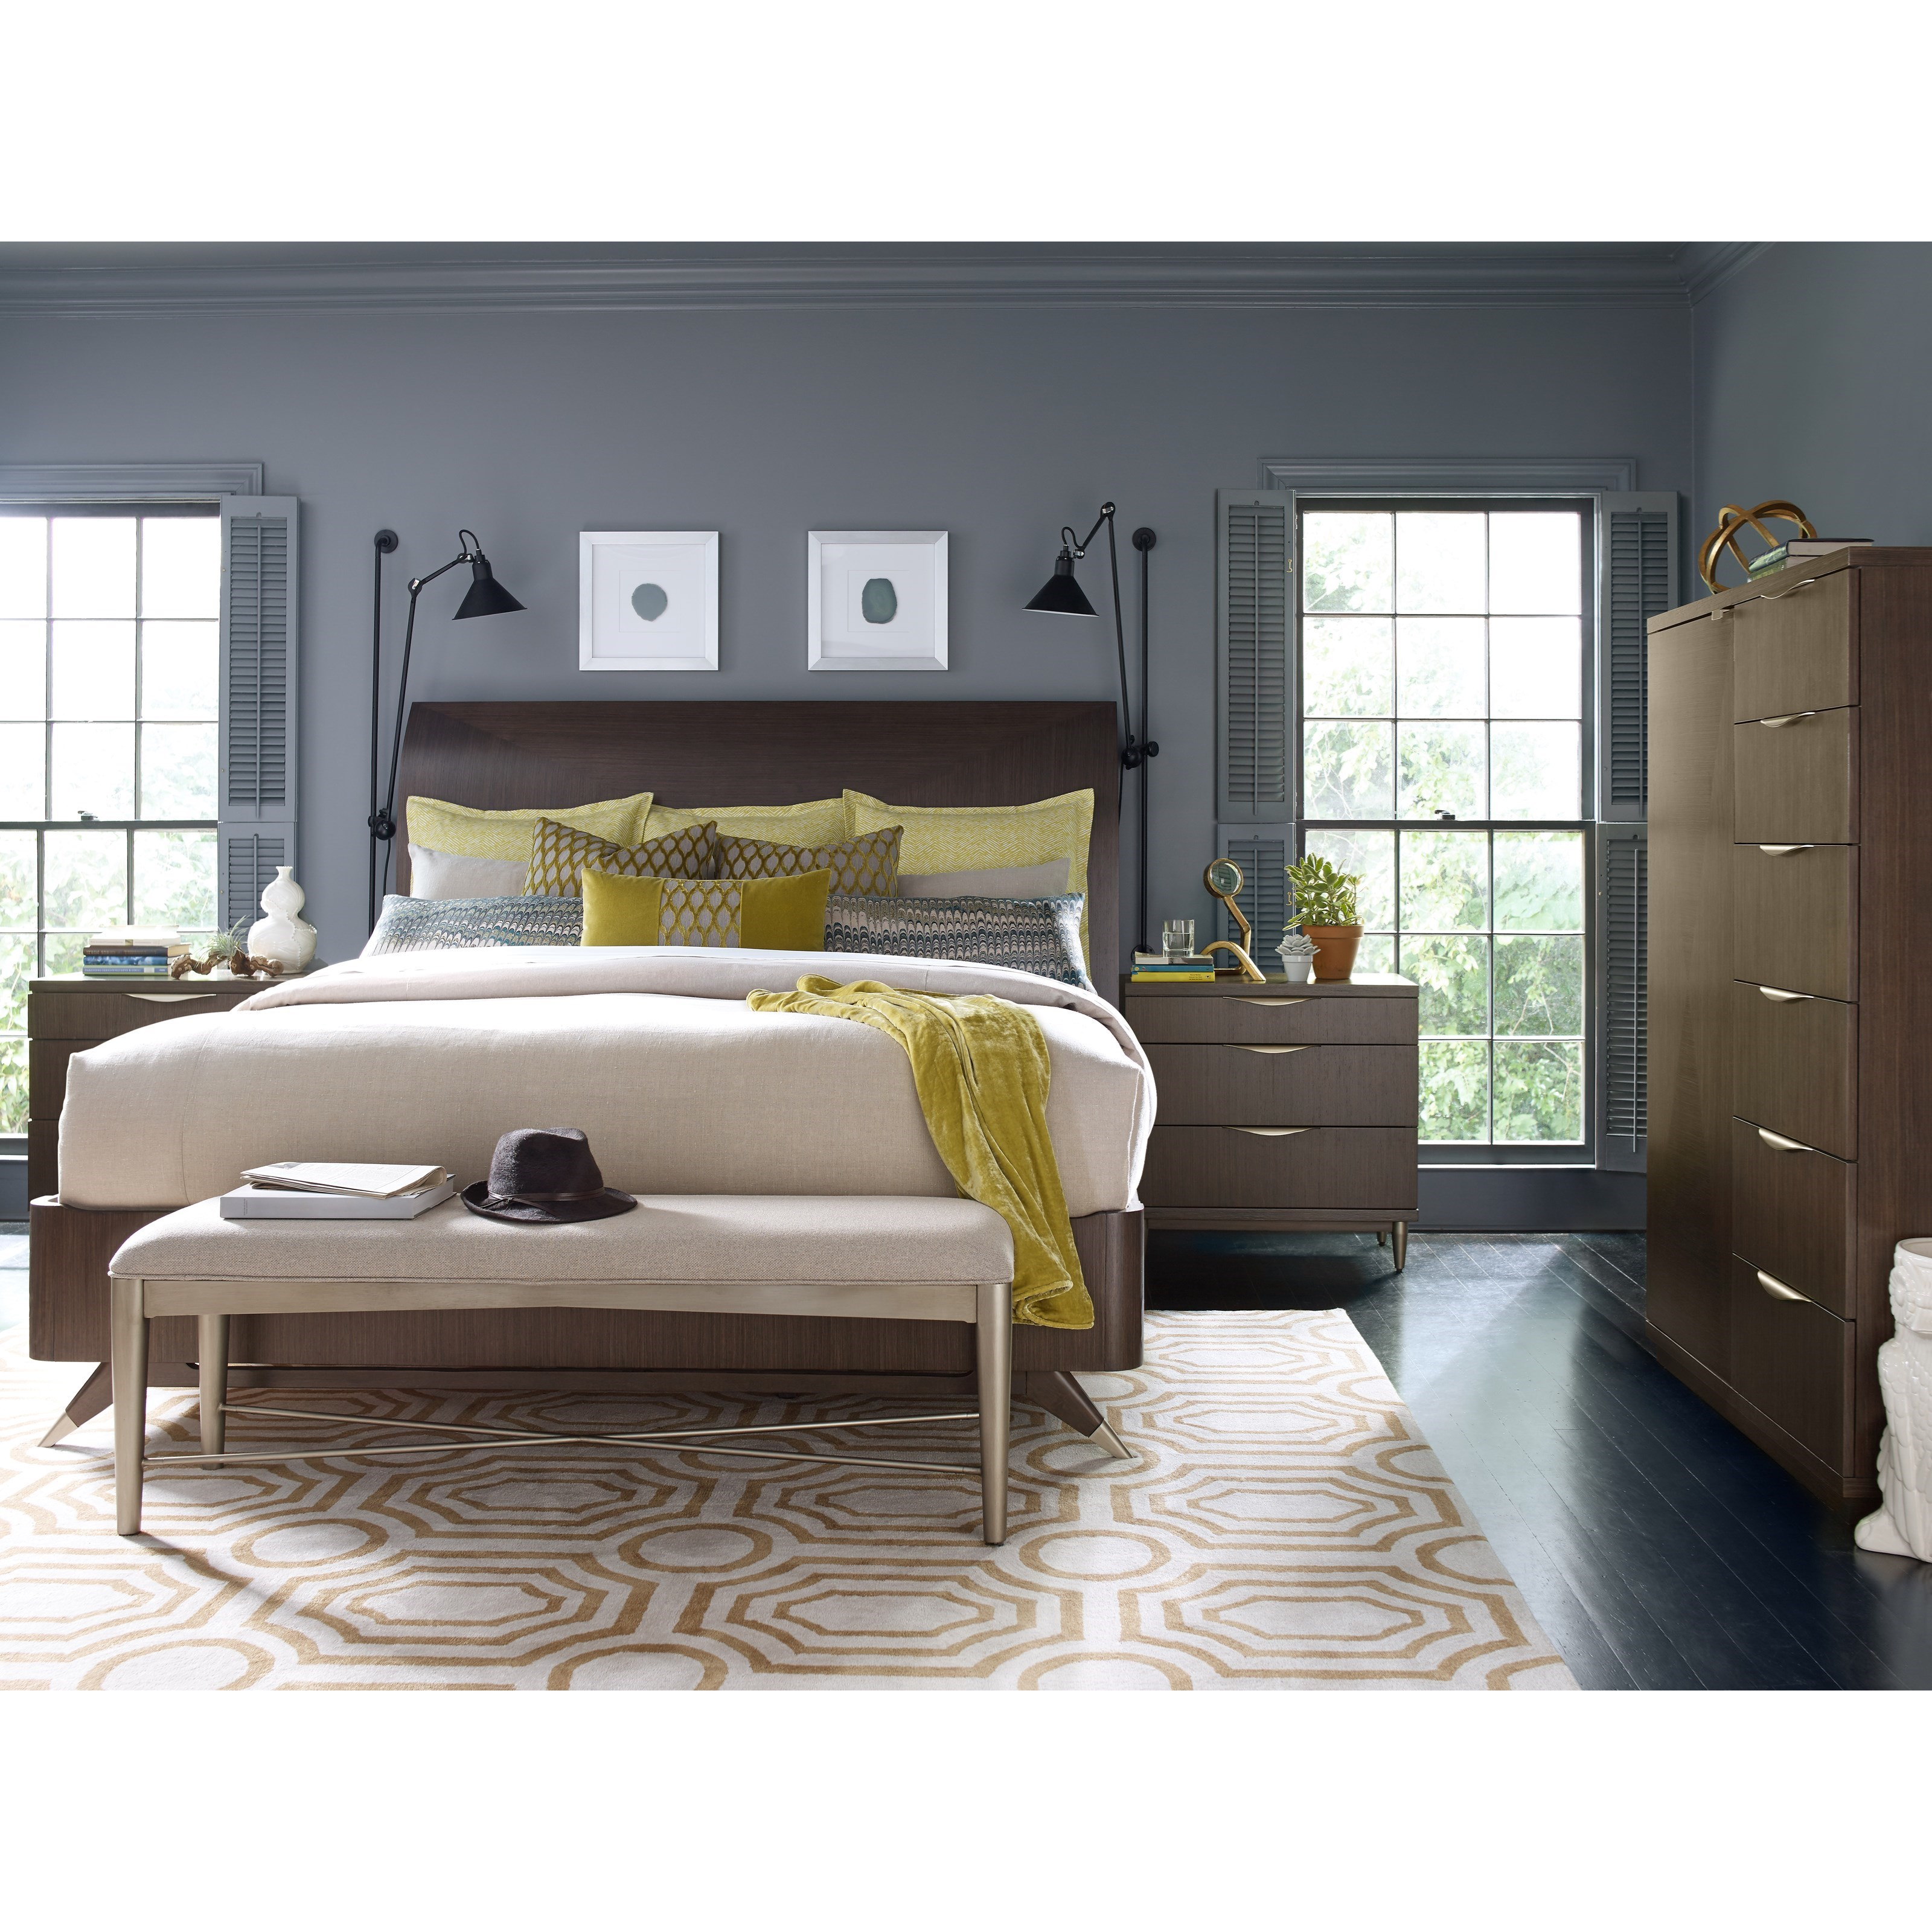 Rachael Ray Home by Legacy Classic Soho California King Bedroom Group - Item Number: 6020 CK Bedroom Group 3